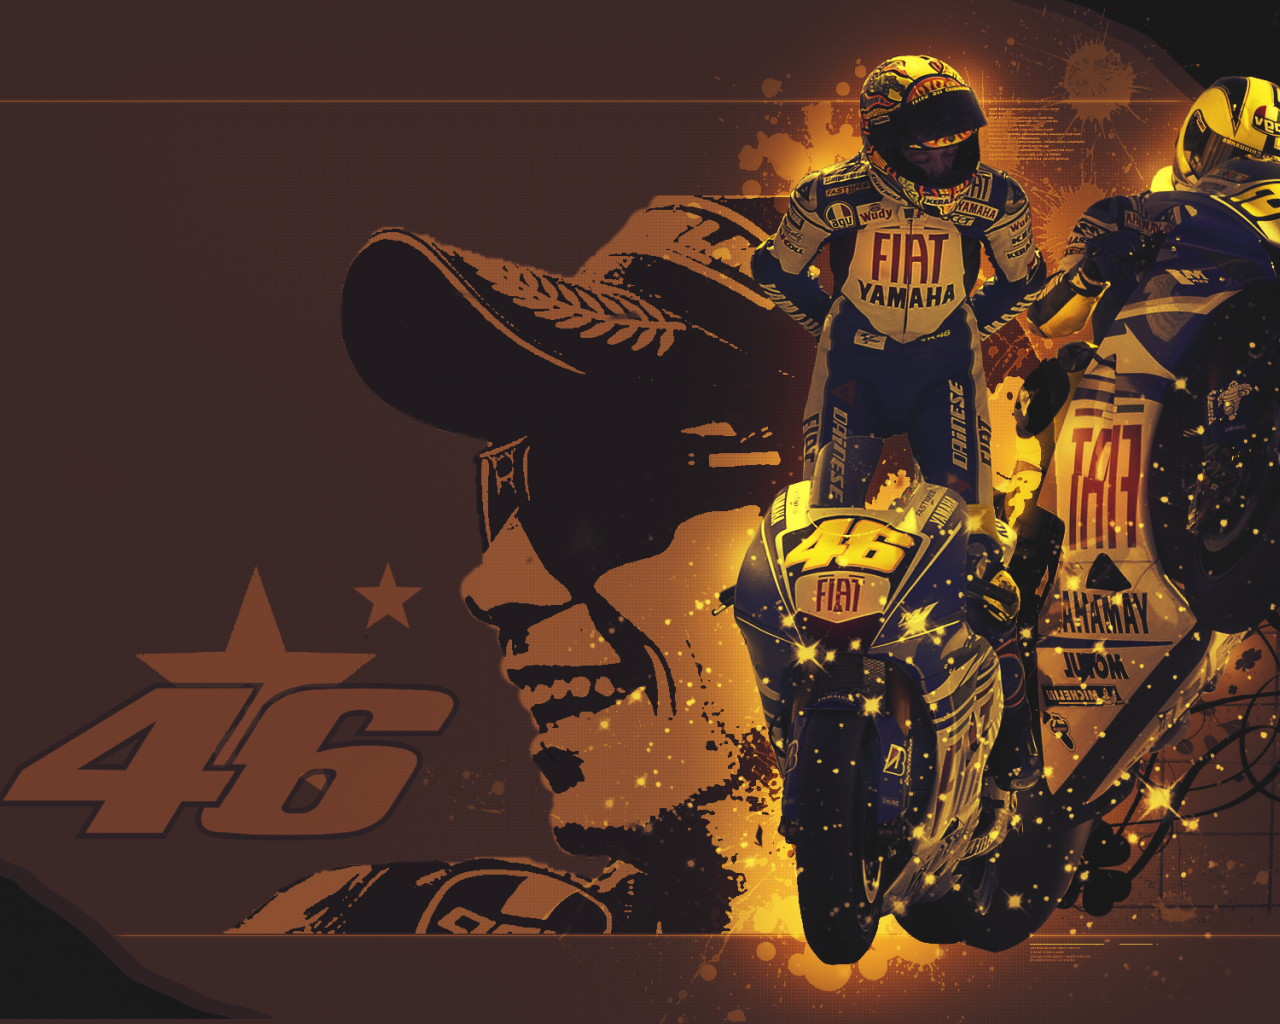 Free download valentino rossi pictures valentino rossi wallpapers valentino rossi [1920x1200] for your Desktop, Mobile & Tablet